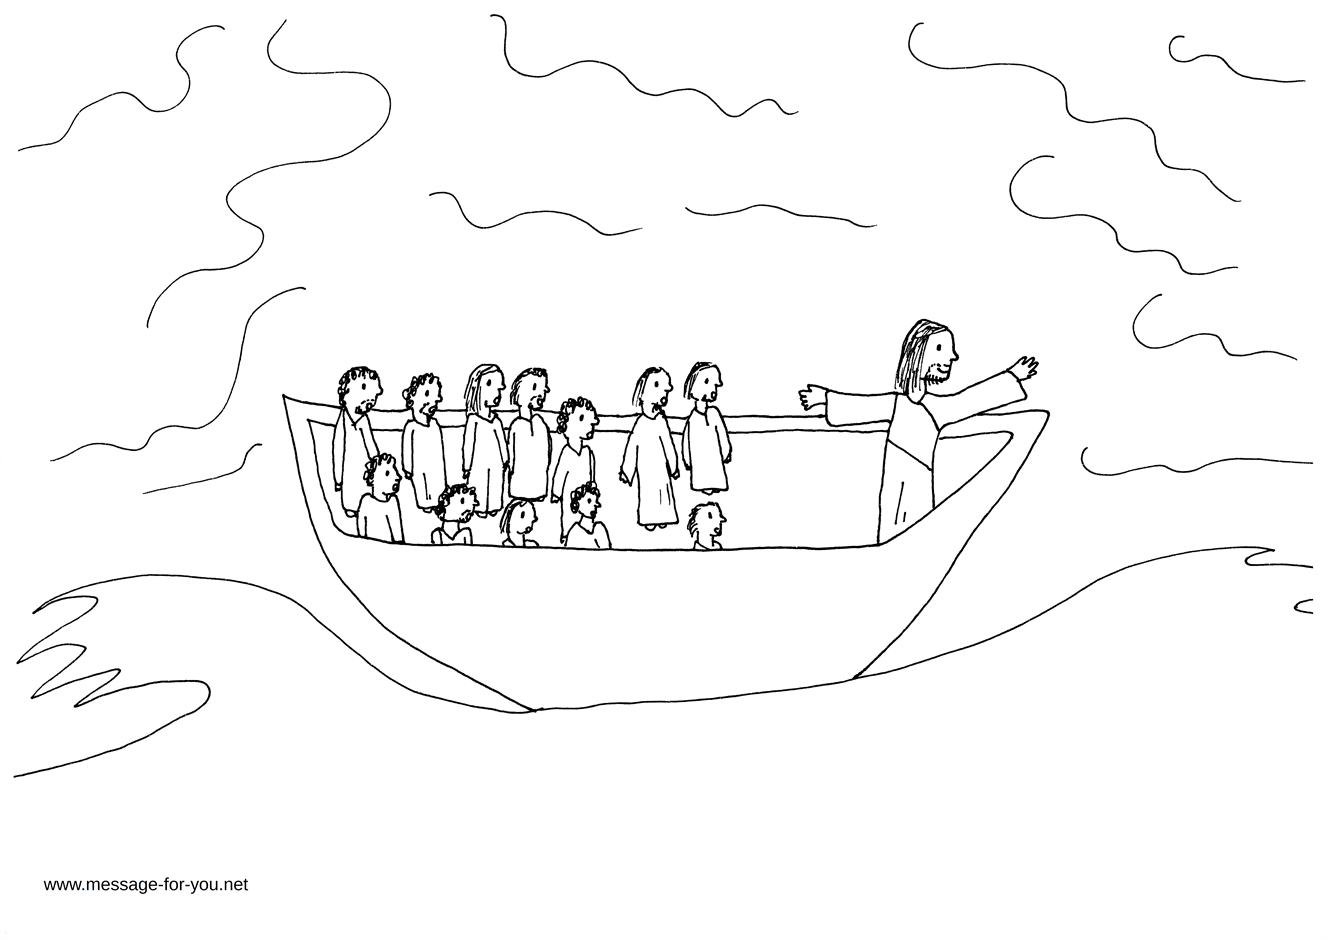 Coloring Page For Jesus Calming The Storm - Coloring Home